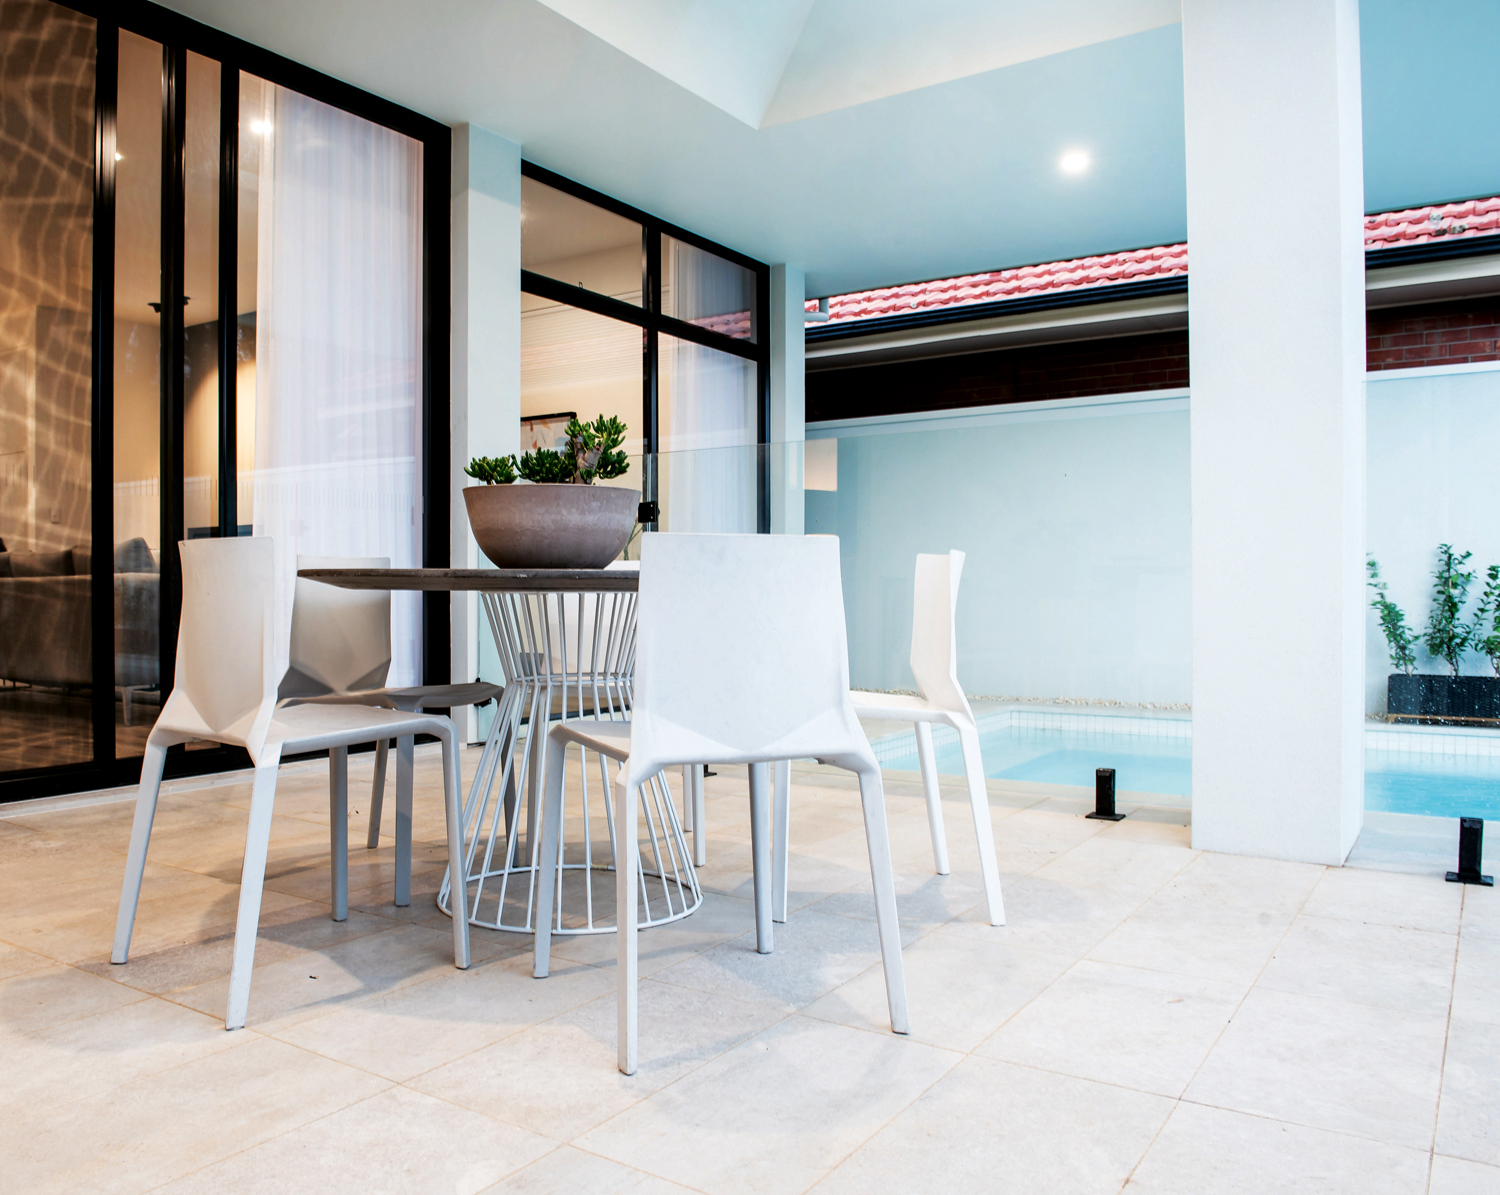 Thinking Limestone? Jazz White limestone is perfect for a timeless outdoor space